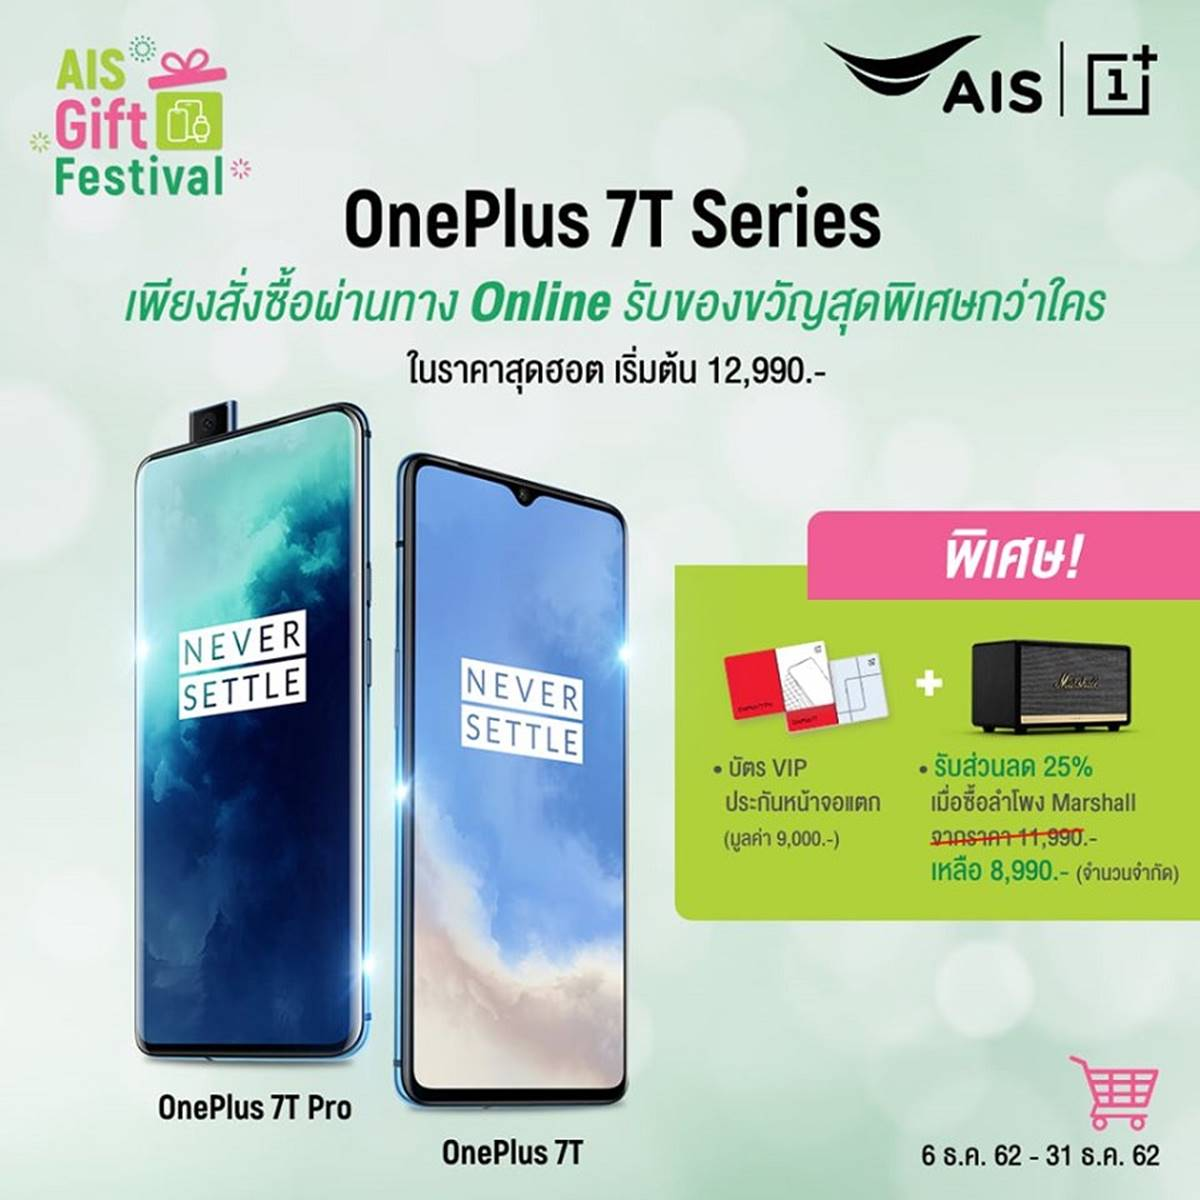 OnePlus 7T Series promotion.